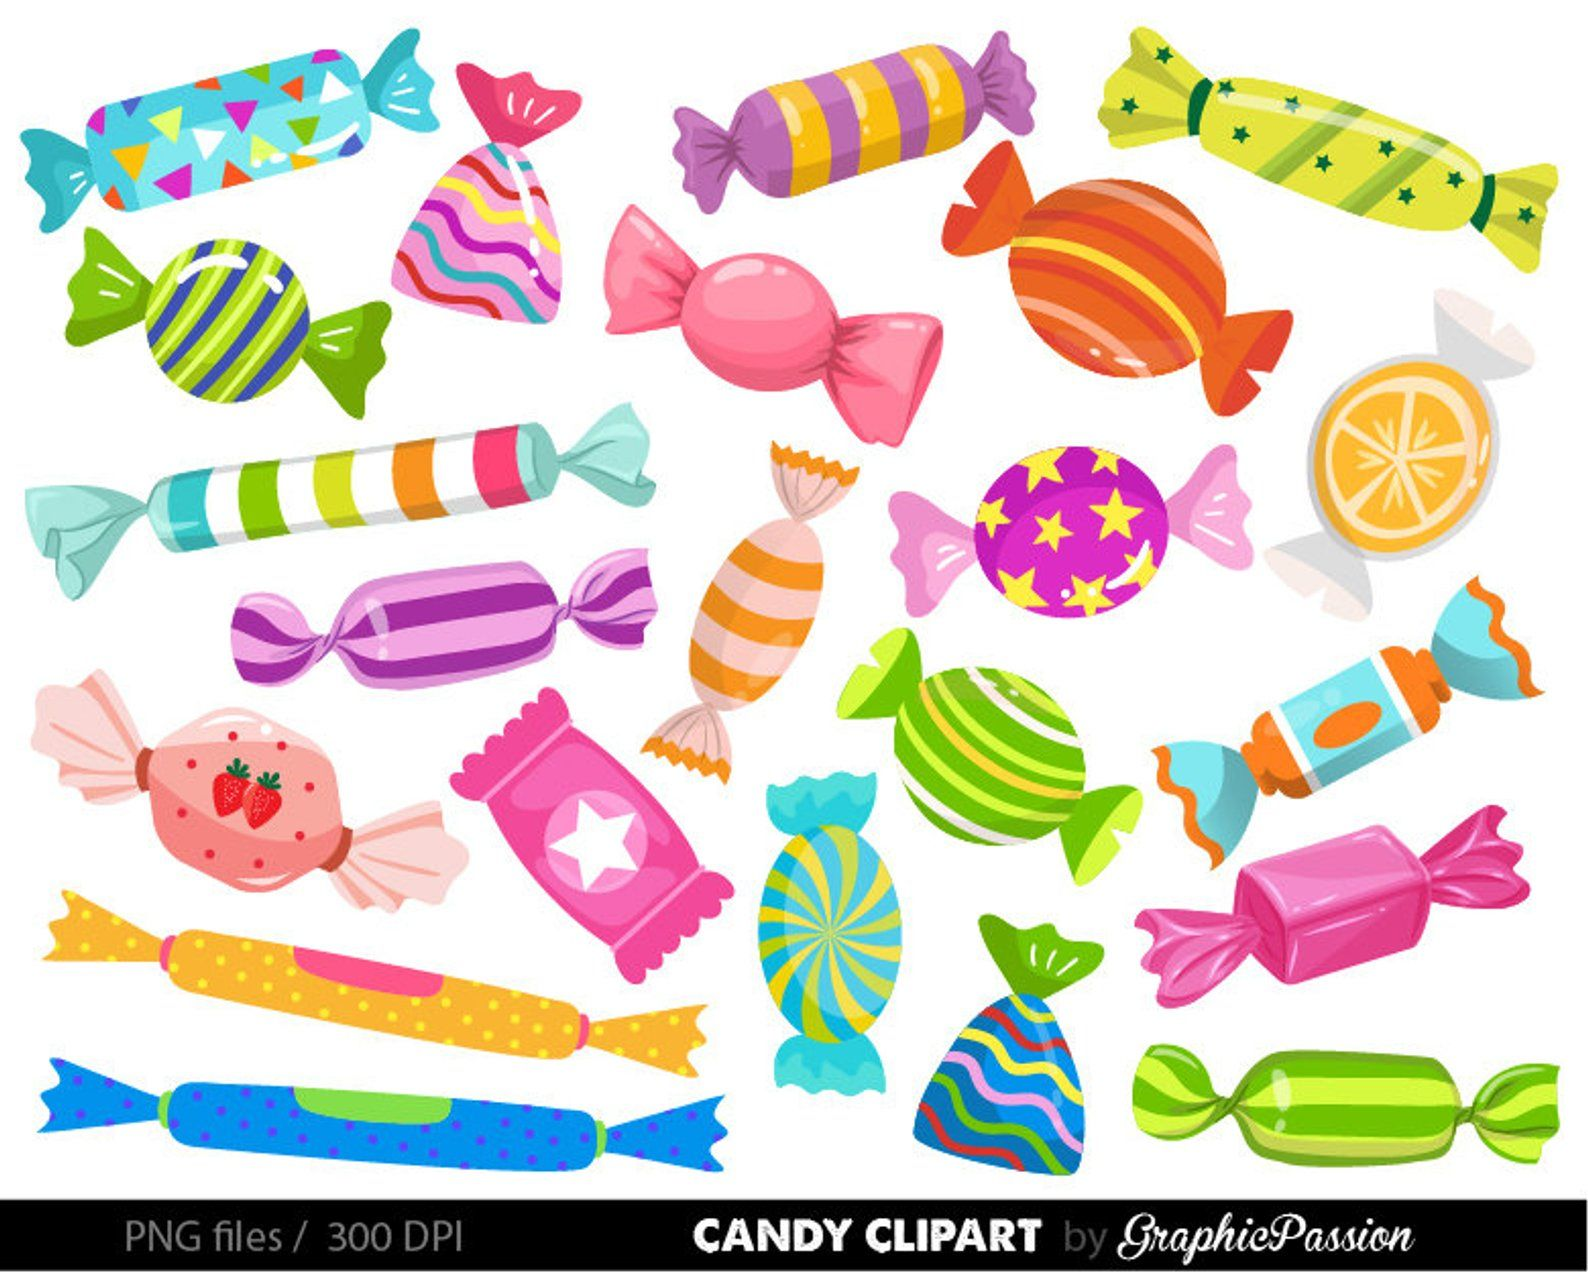 Candy clipart Candy graphics Wonka Party Clipart Desserts.